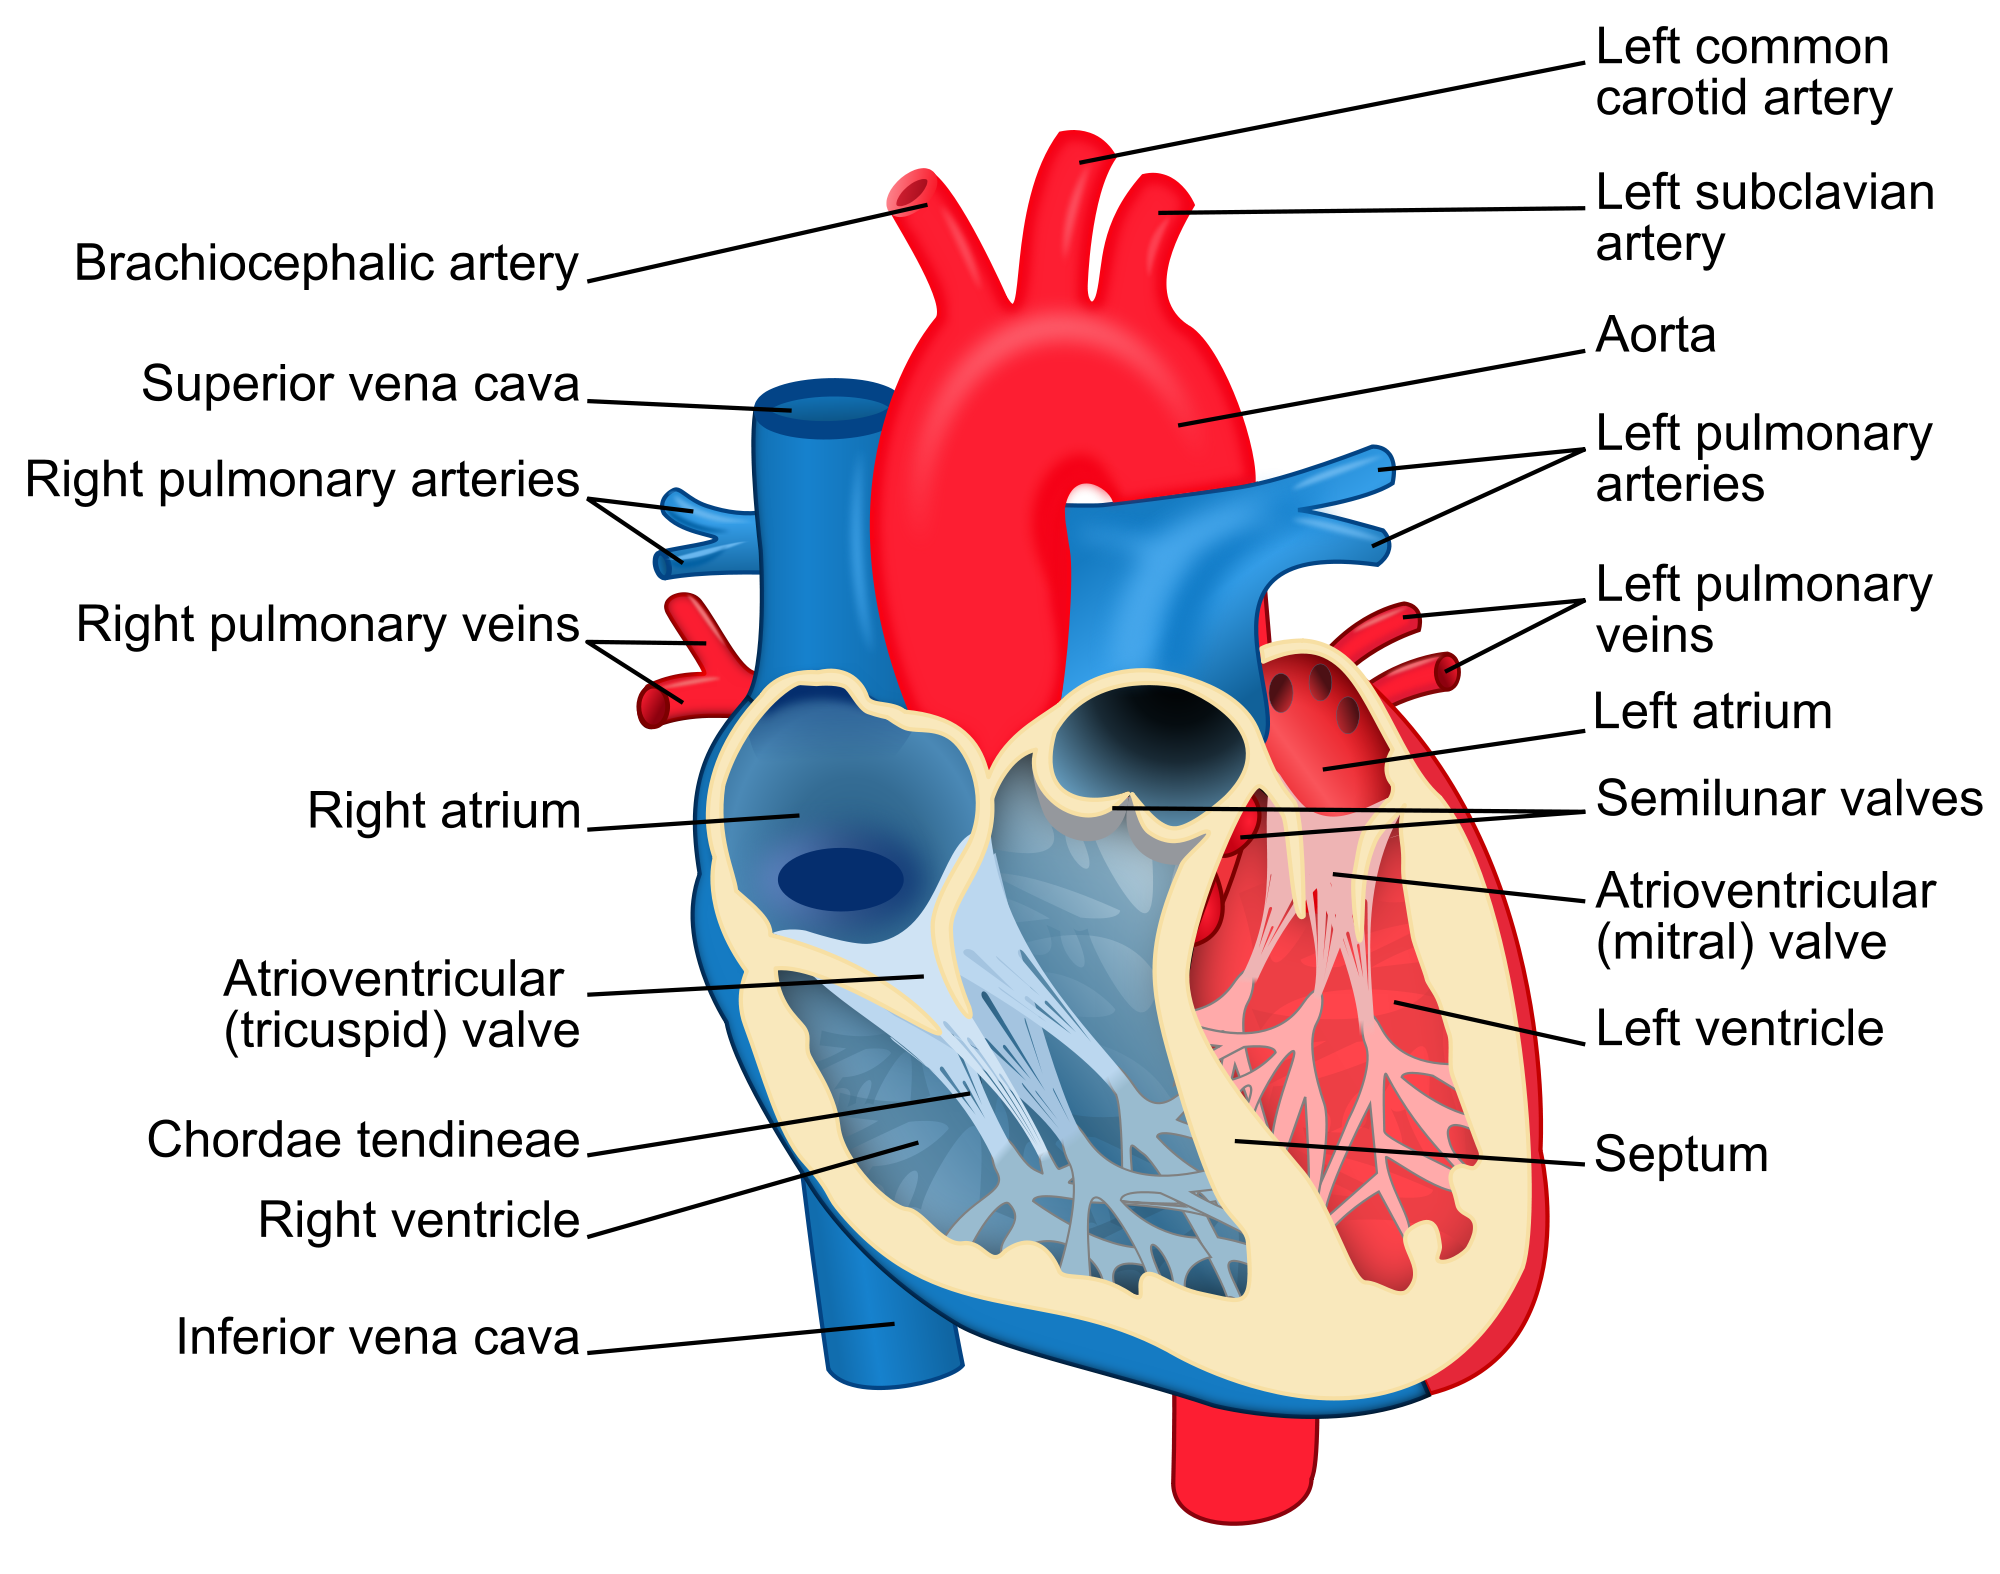 Structural diagram of the human heart an organ that provides a structural diagram of the human heart an organ that provides a continuous blood circulation through pooptronica Choice Image